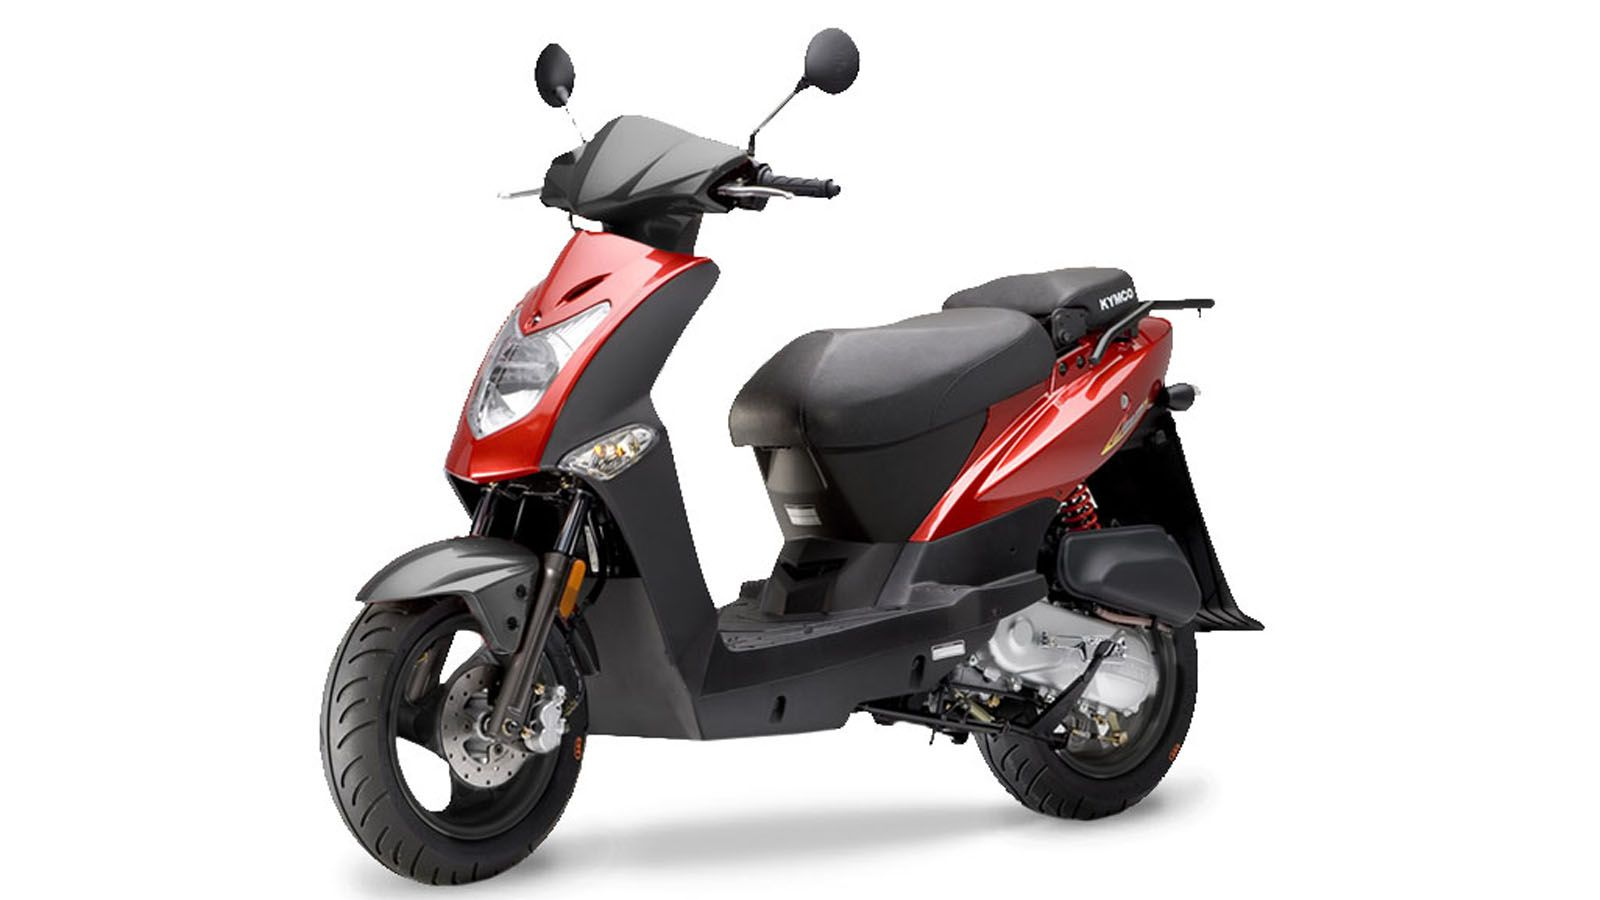 kymco agility 50 4t wiring diagram plot for the great gatsby piece 2t malossi 70cc cylinder kit